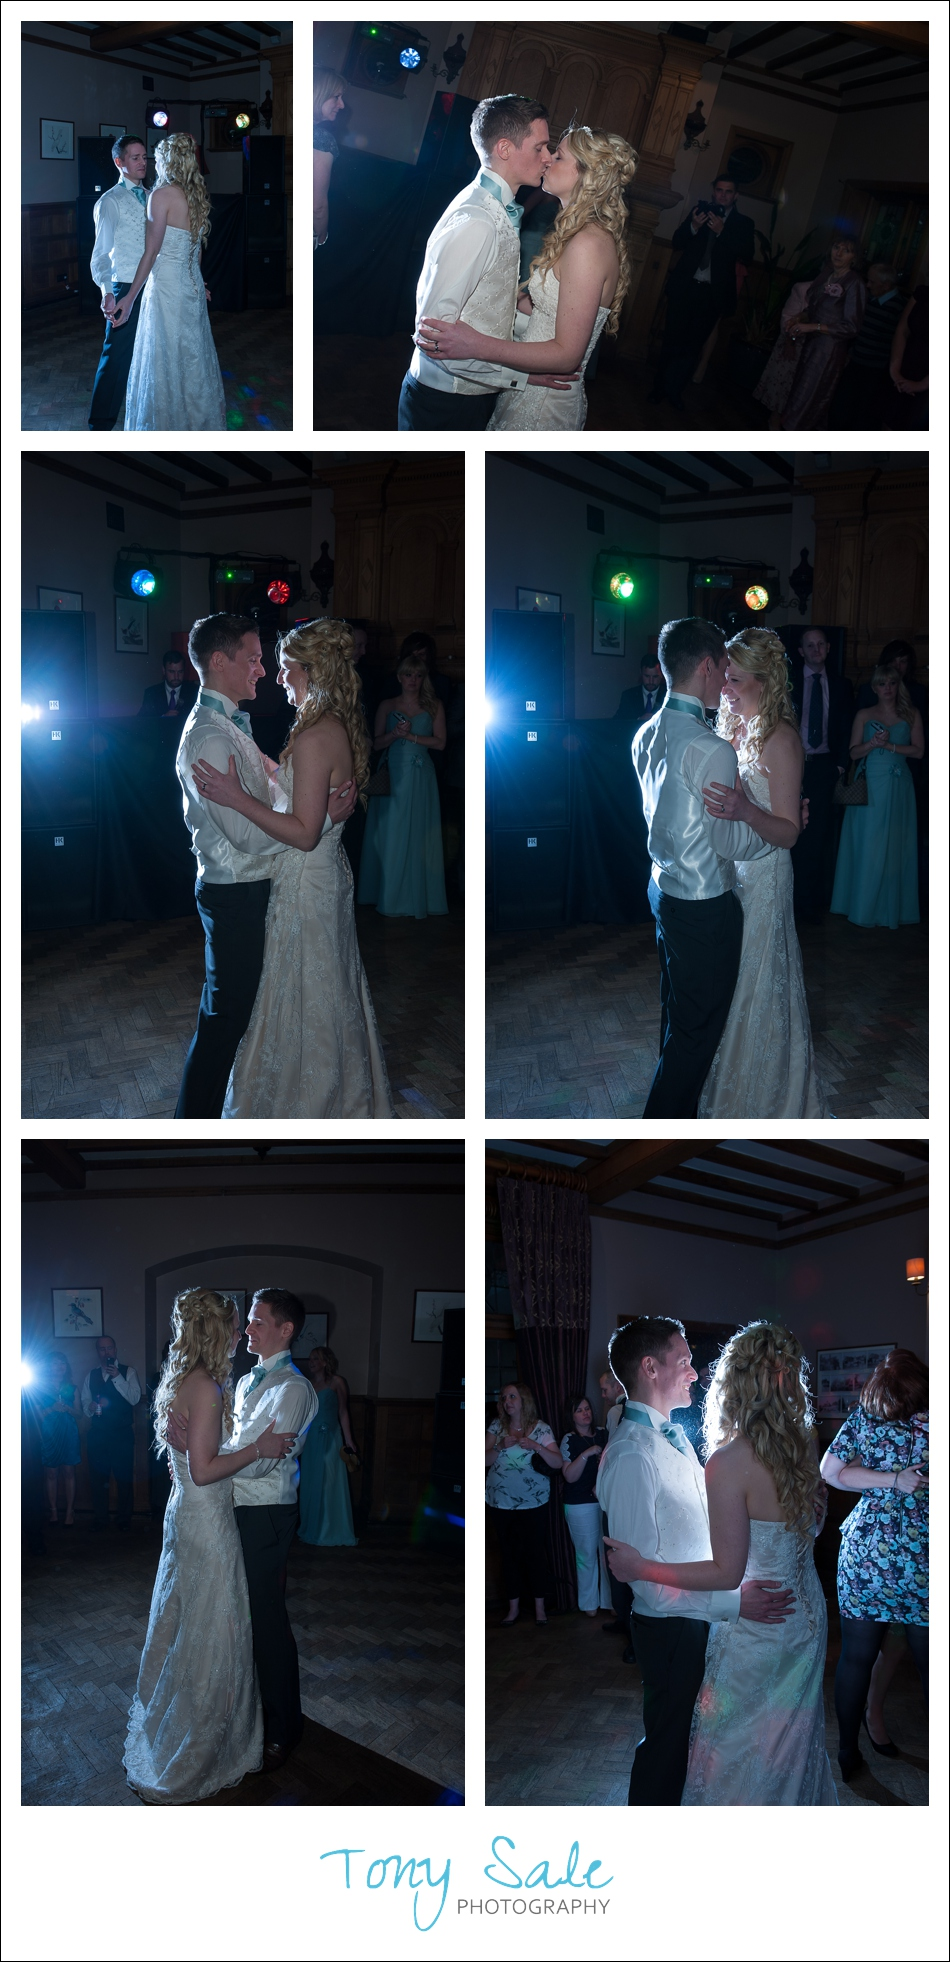 Bride and groom enjoy the first dance together